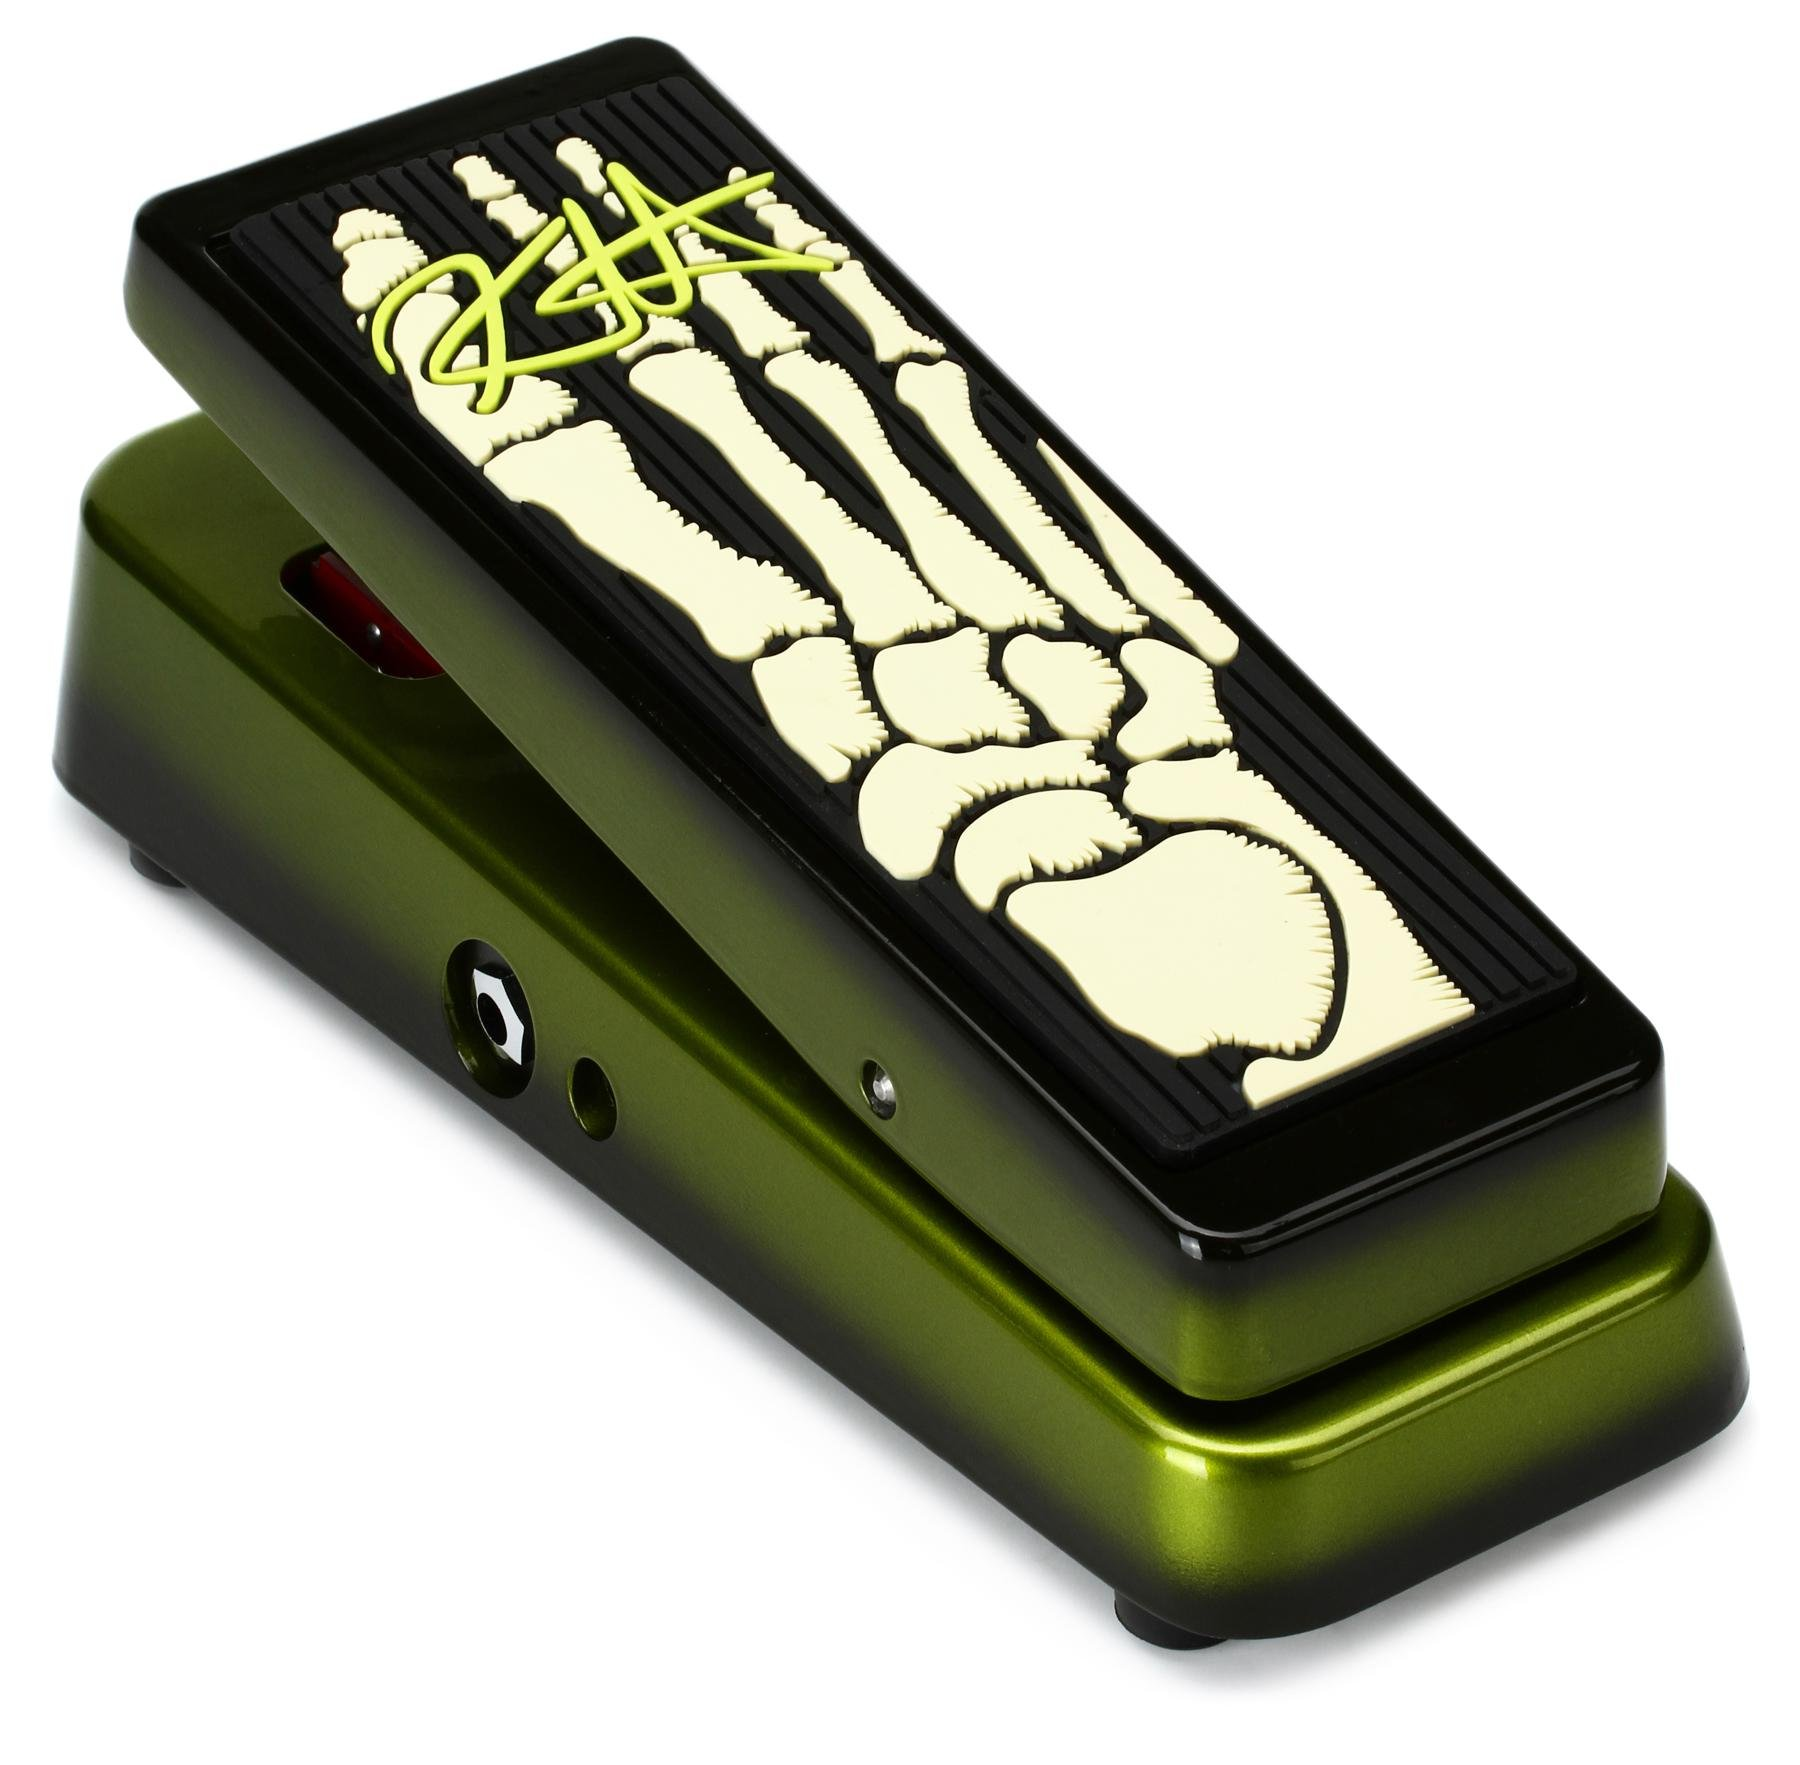 Dunlop Kh95 Kirk Hammett Signature Cry Baby Wah Pedal Sweetwater Upgrade To Your Image 1